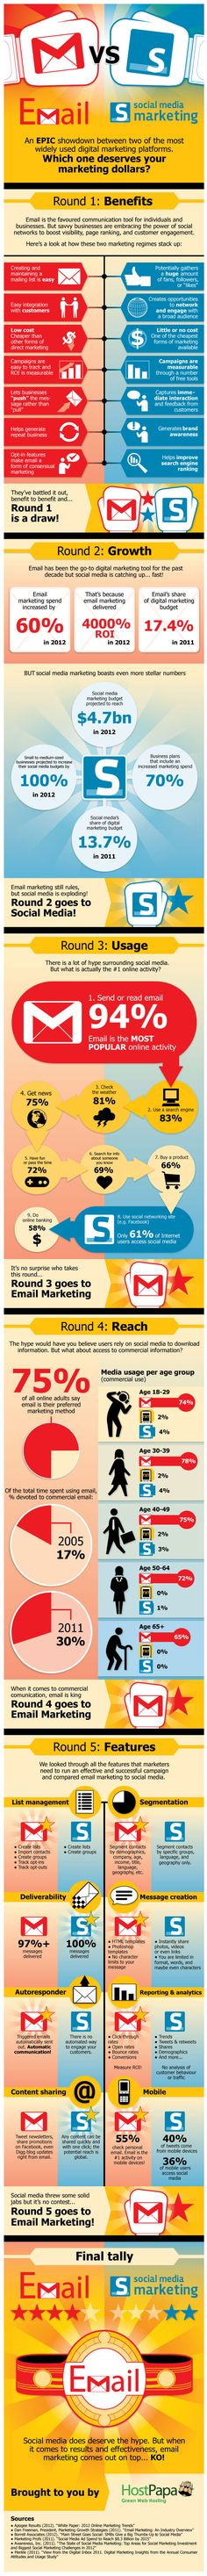 Email Marketing is still the King, but Social Media Marketing is still important! #infographic #email #socialmedia